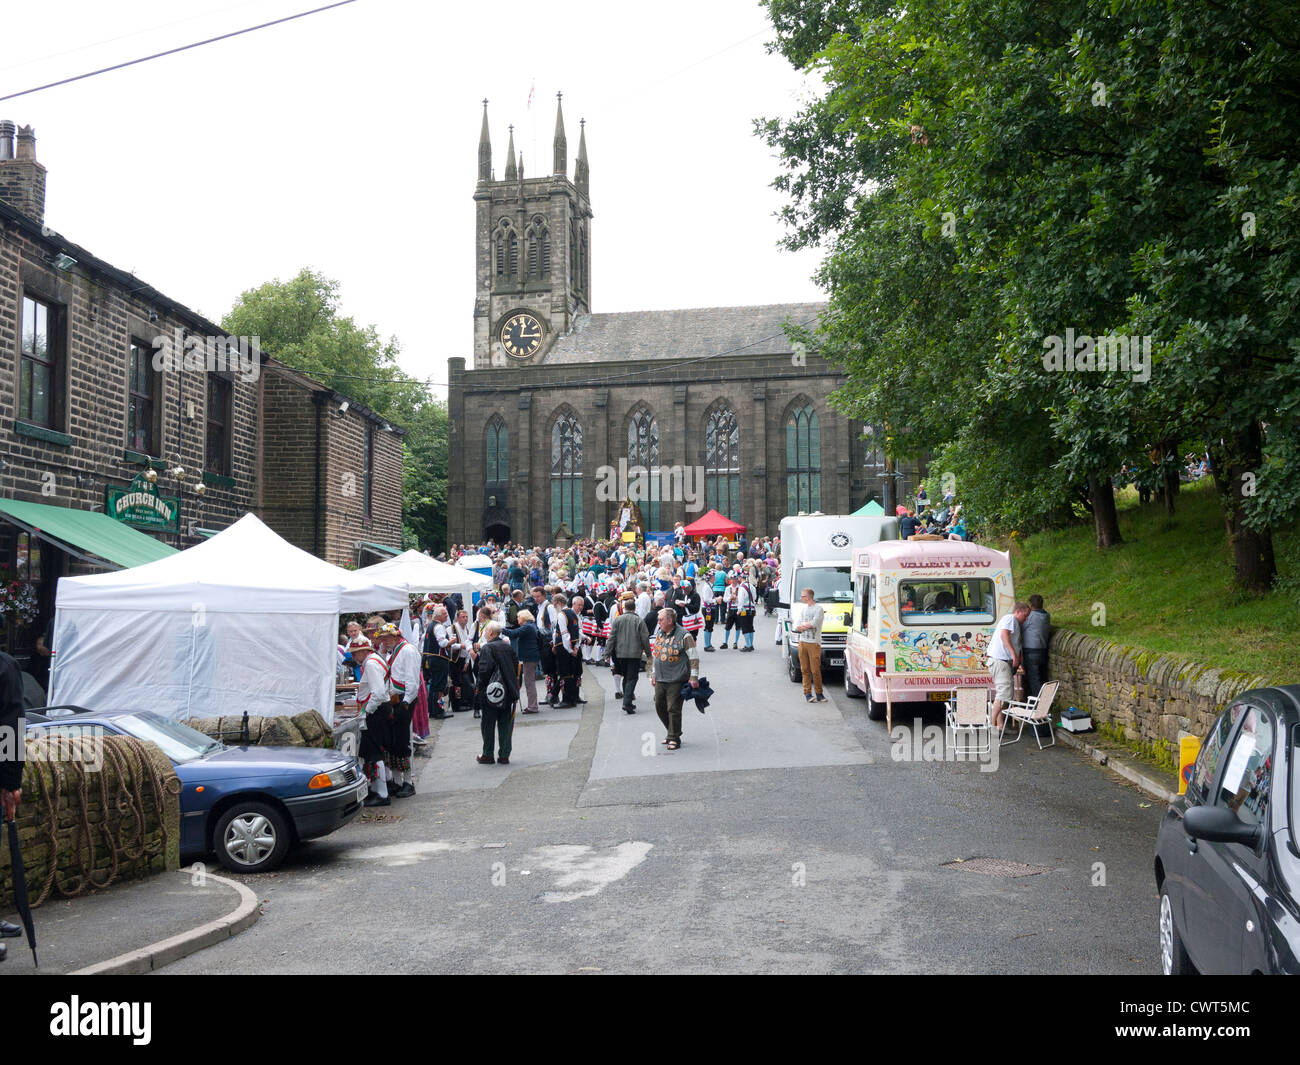 Parish Church of St Chad during the Rushcart Festival, Uppermill, Greater Manchester, Saddleworth, England, UK. - Stock Image